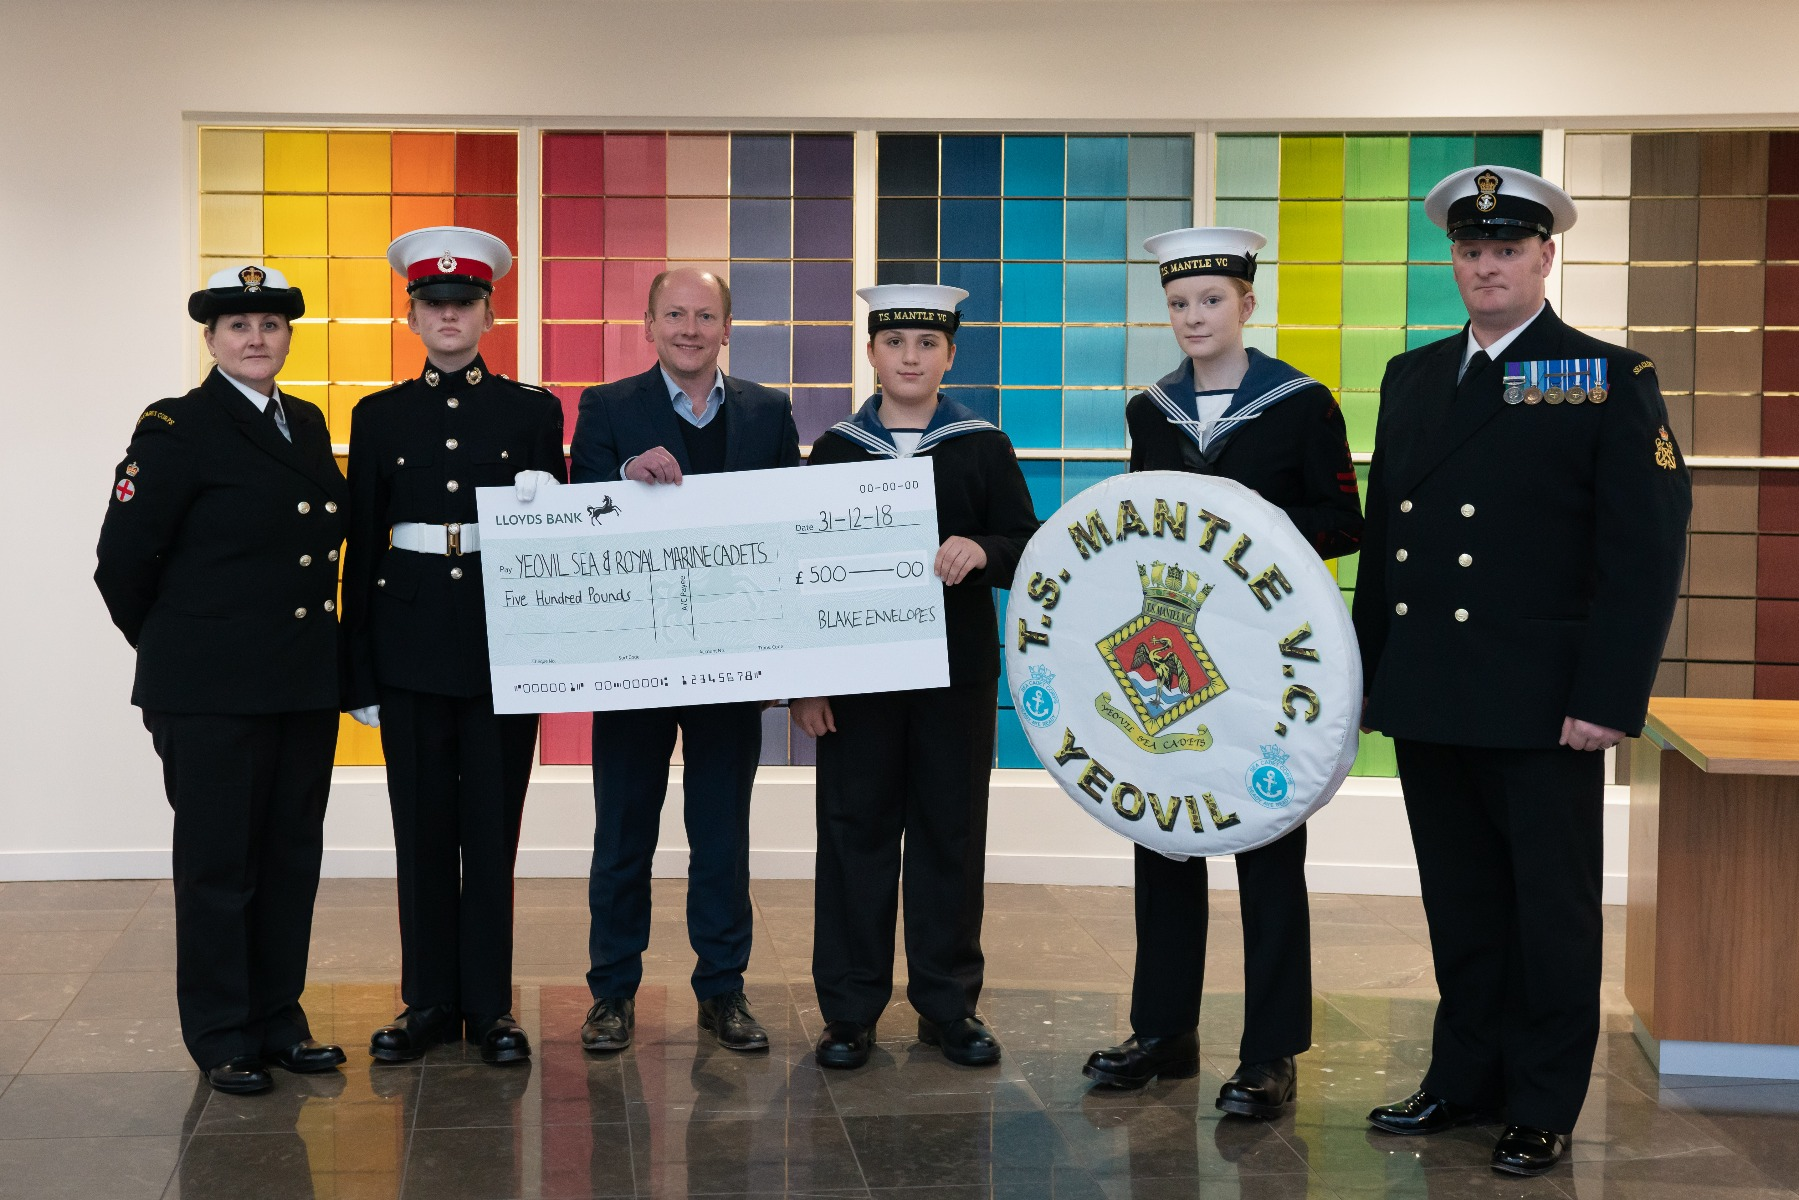 T S Mantle Cadets with cheque